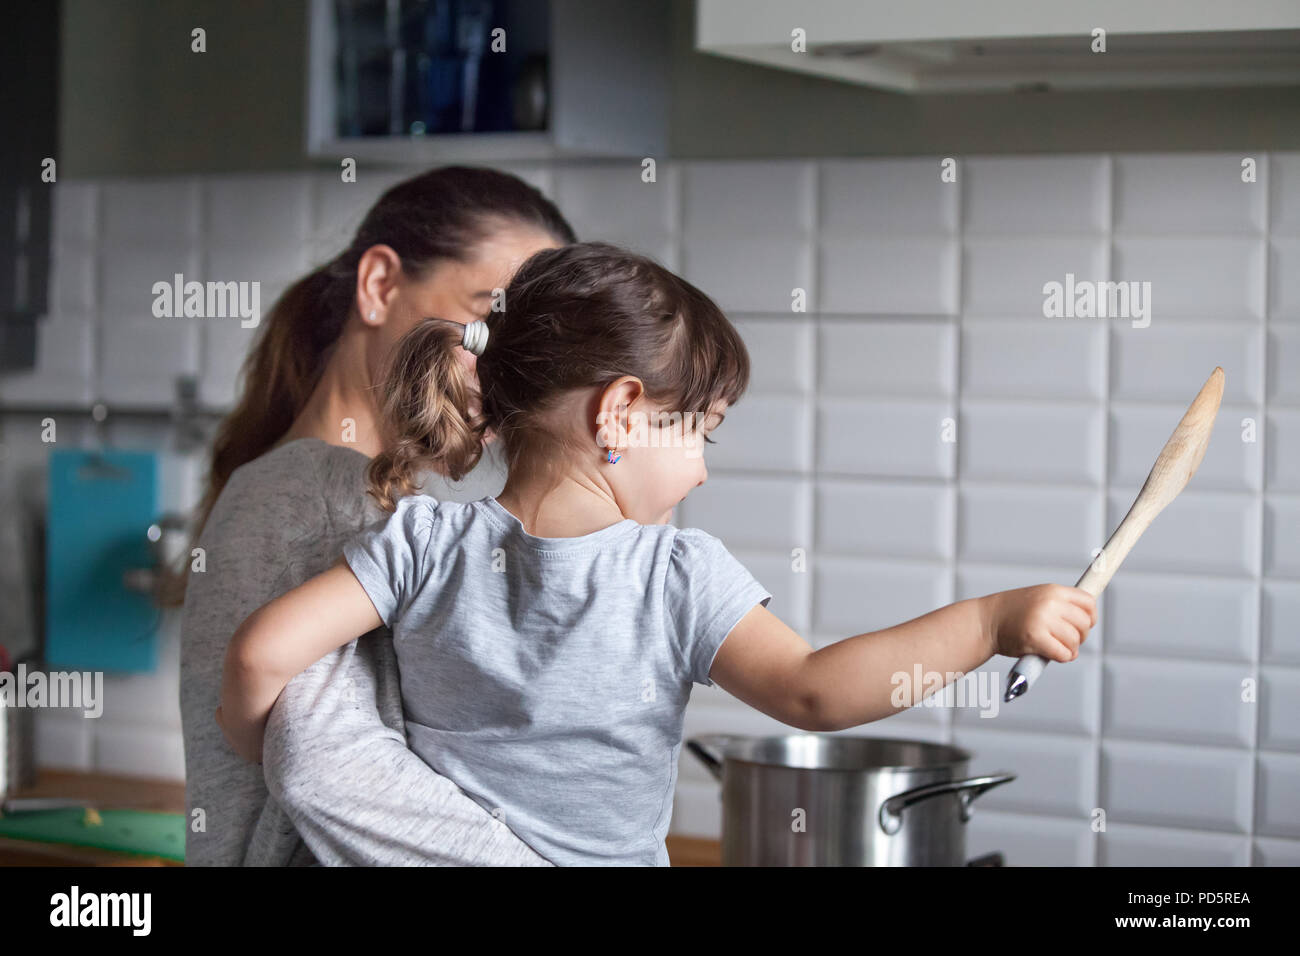 Rear view at mother holding child daughter helping to cook - Stock Image